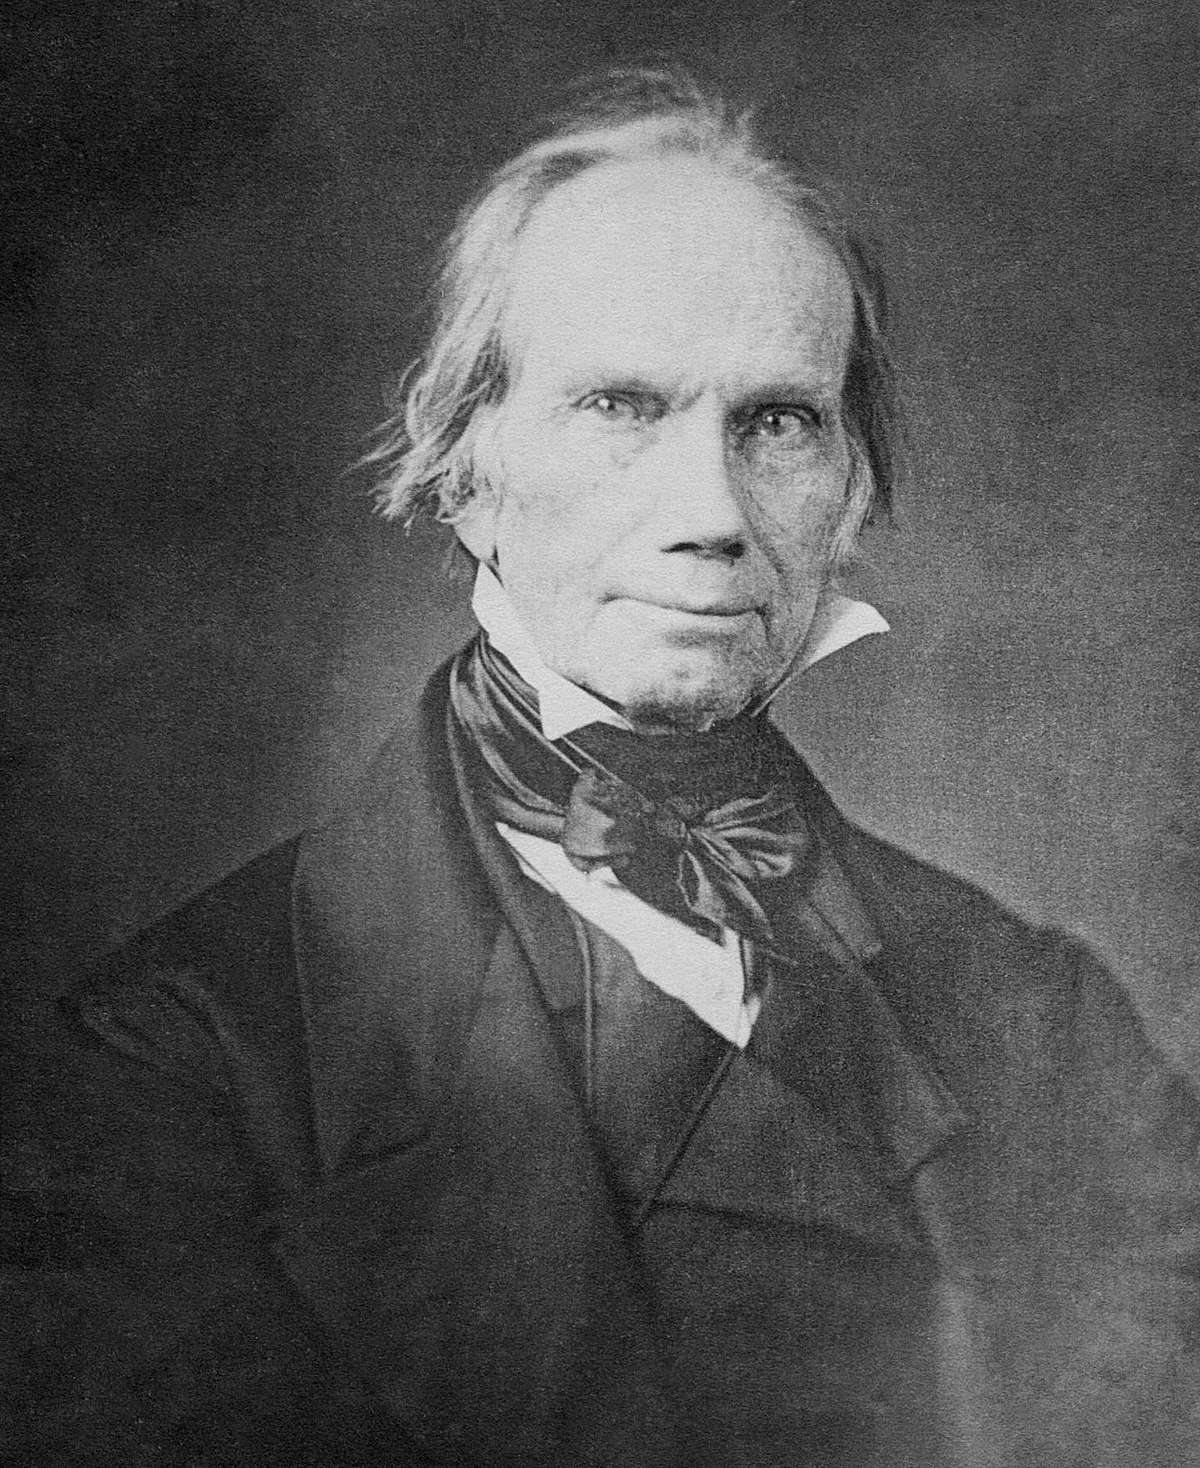 research papers on henry clay The papers of henry clay volume 5, secretary of state, 1826 / in volume 5 of the papers of henry clay, the second of the series to cover clay's role as secretary of state, problems arising from domestic political pressures become significant in the conduct of national affairs both at home and abroad.